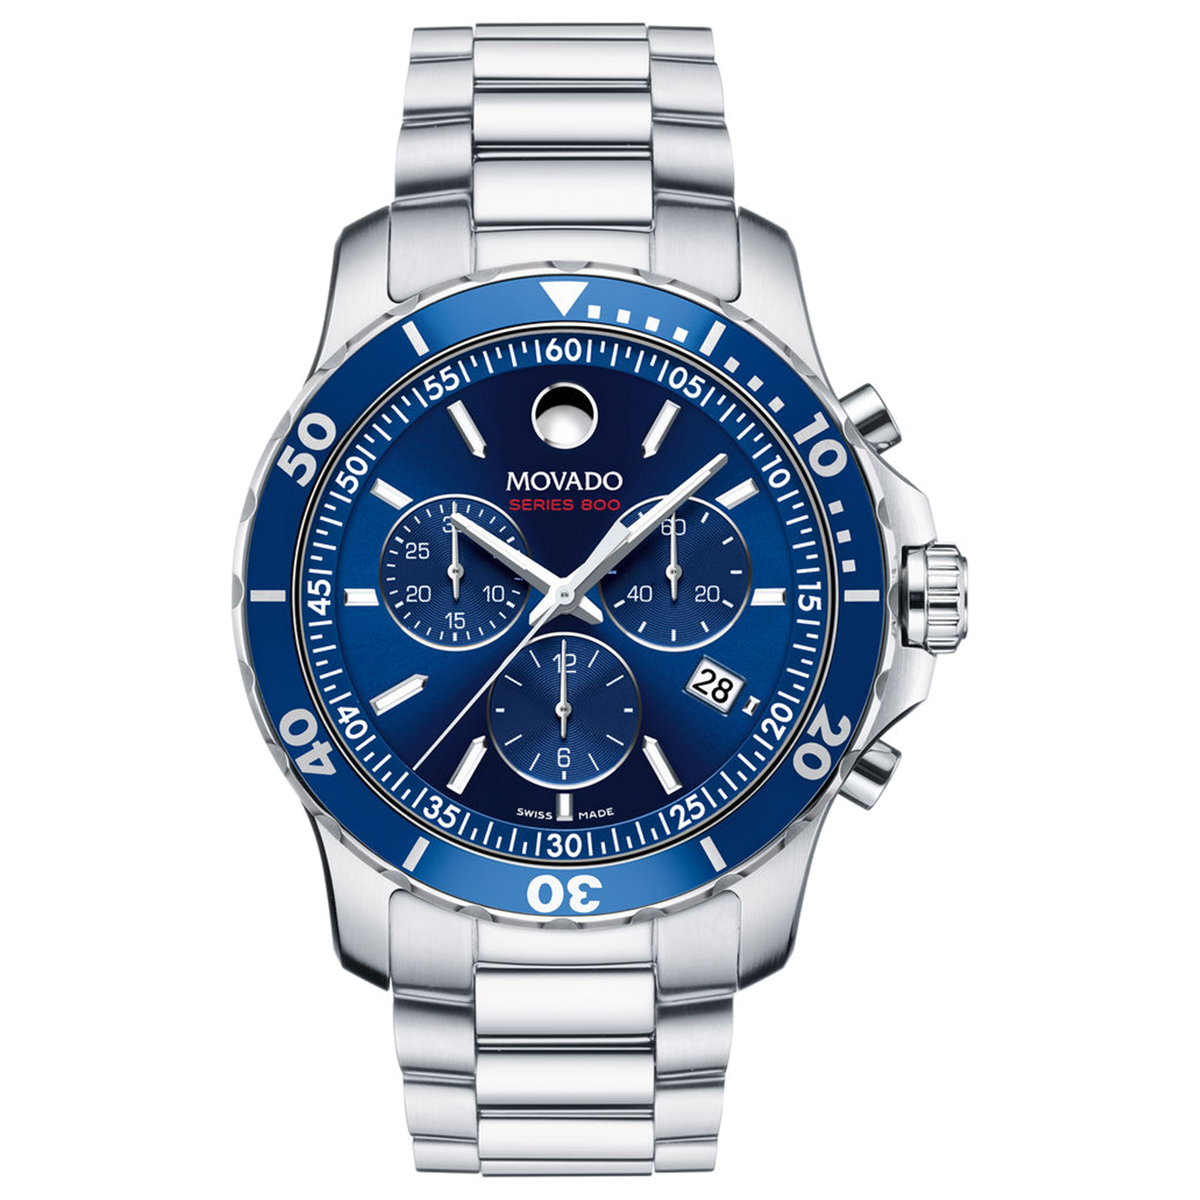 Movado Series 800 Chronograph - Stainless Steel with Blue Dial